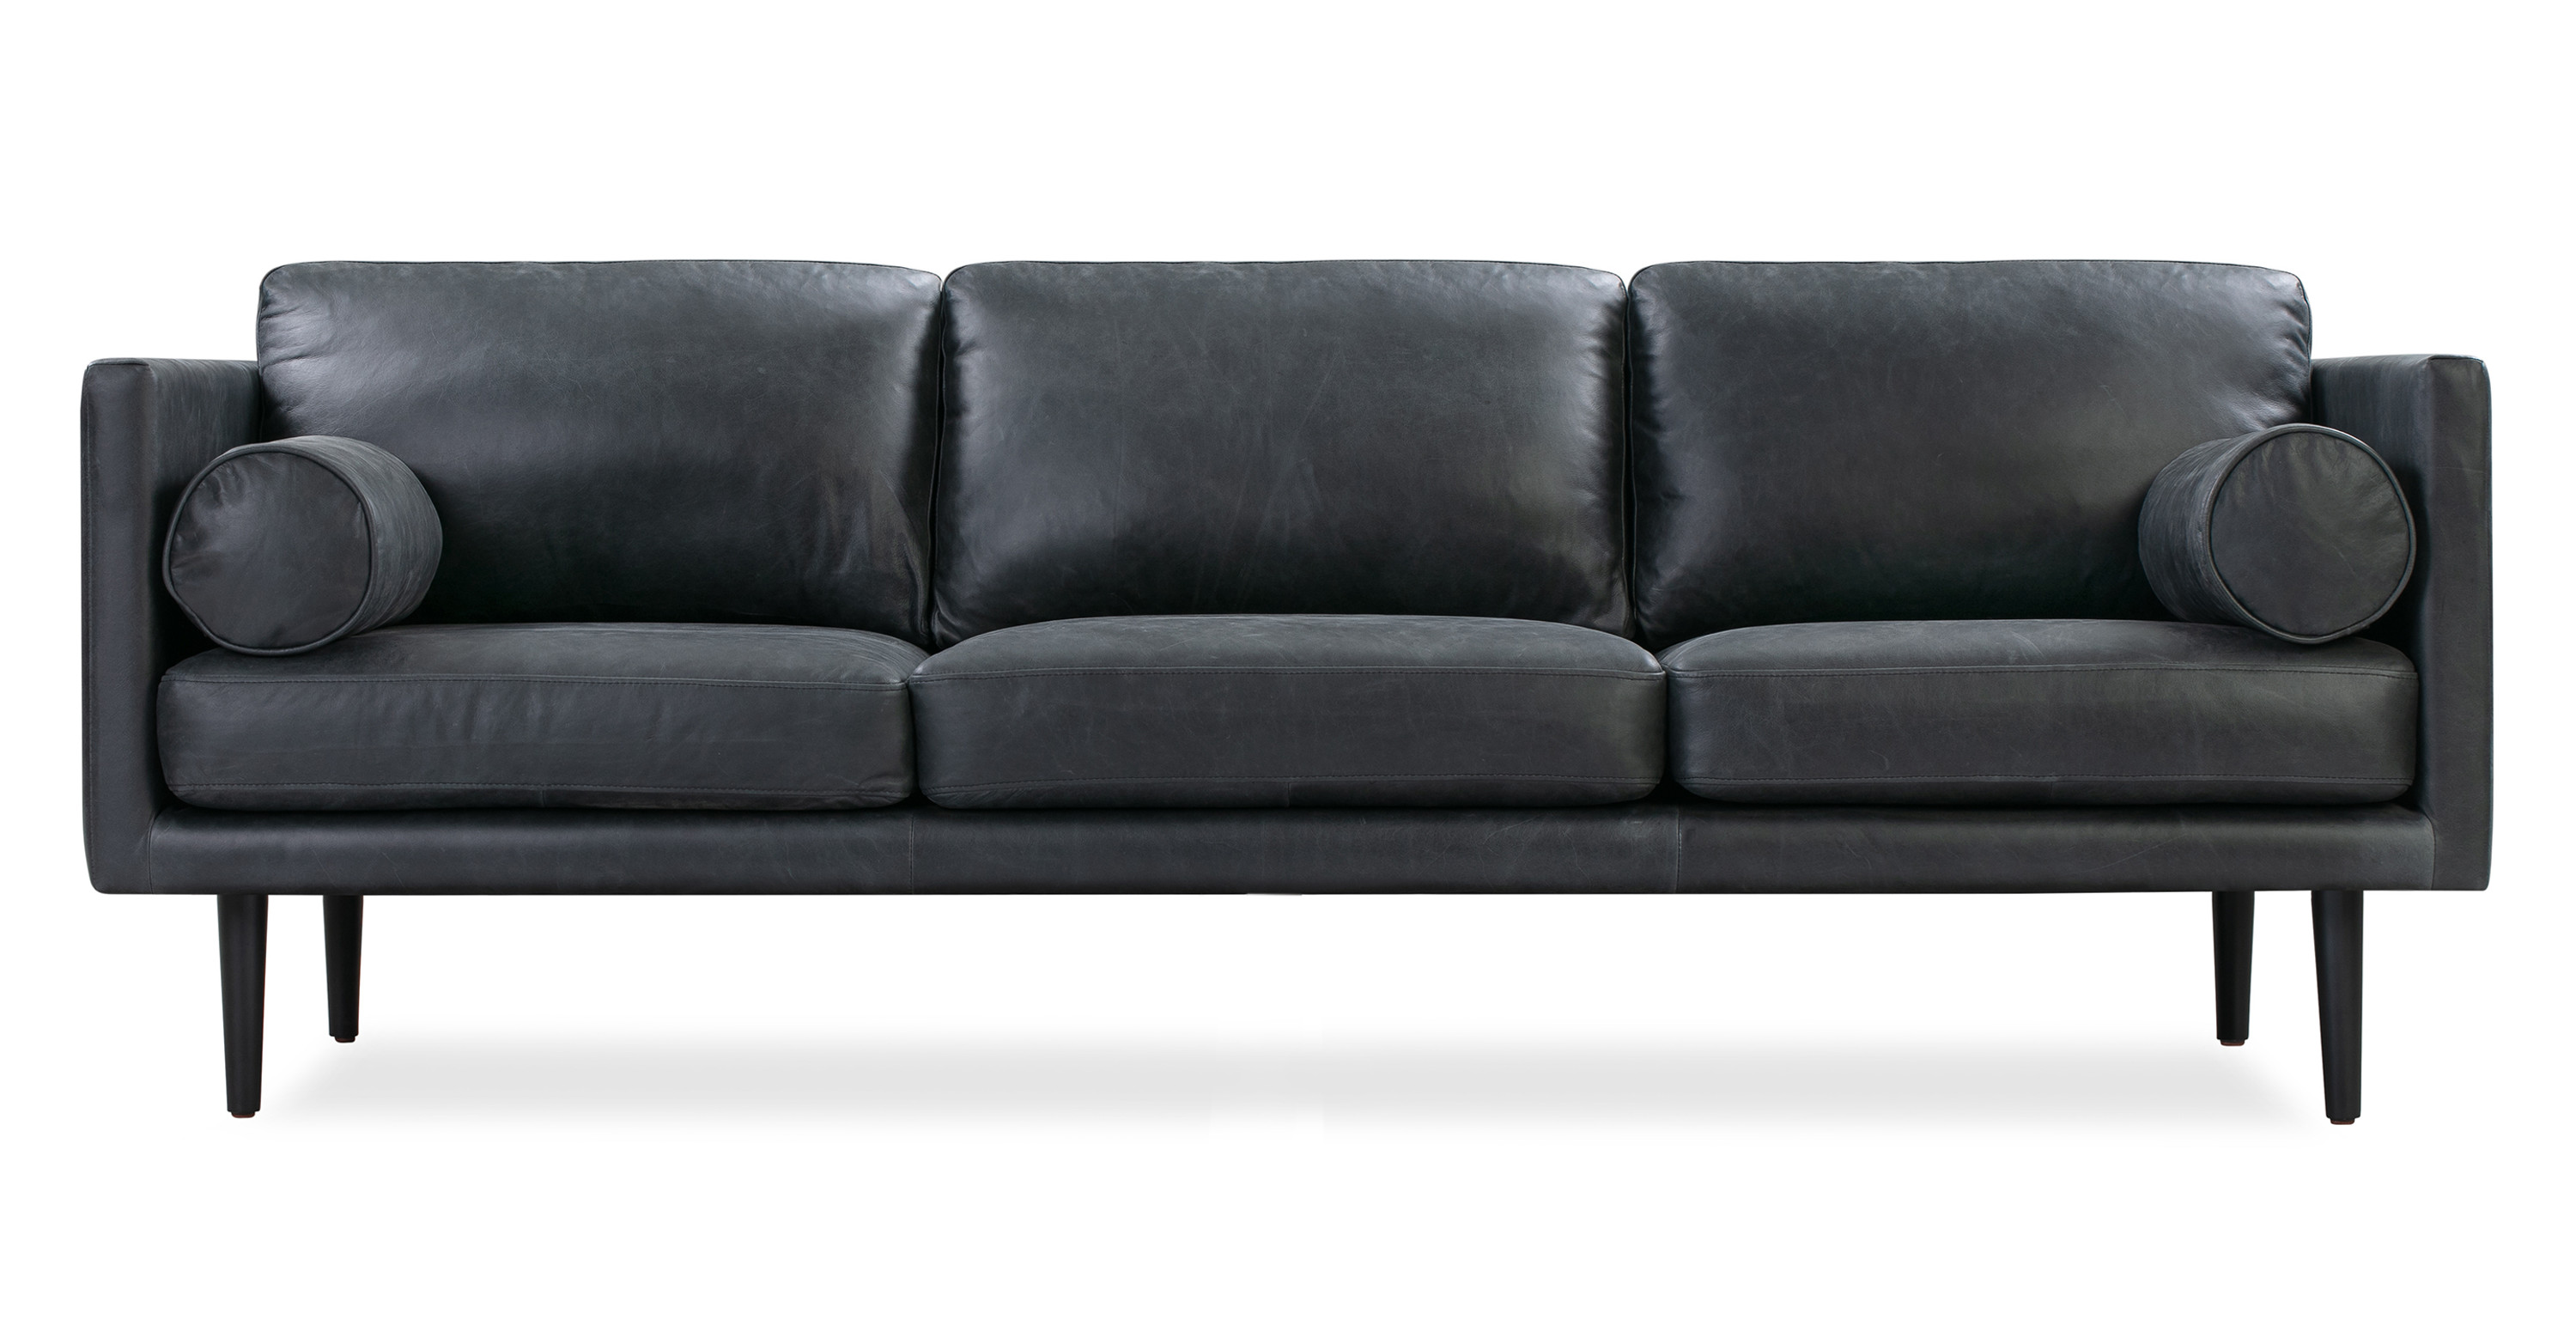 Awesome Spectre 81 Leather Sofa Black Top Grain Full Aniline Pabps2019 Chair Design Images Pabps2019Com